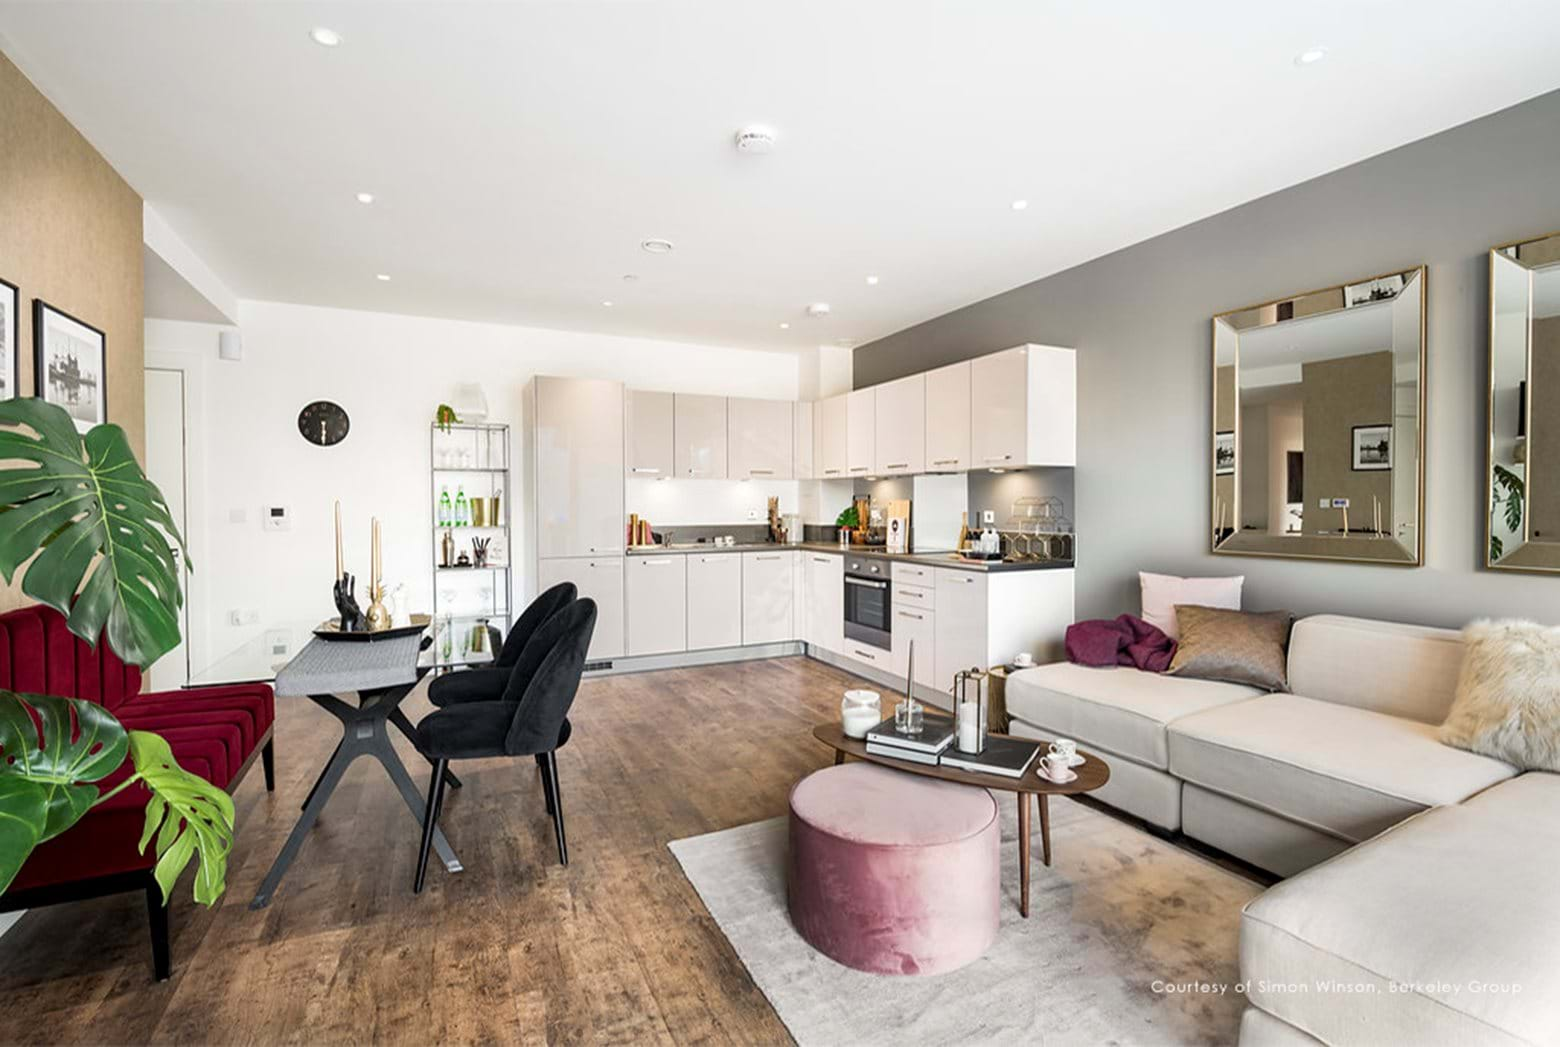 West View Battersea Show Home